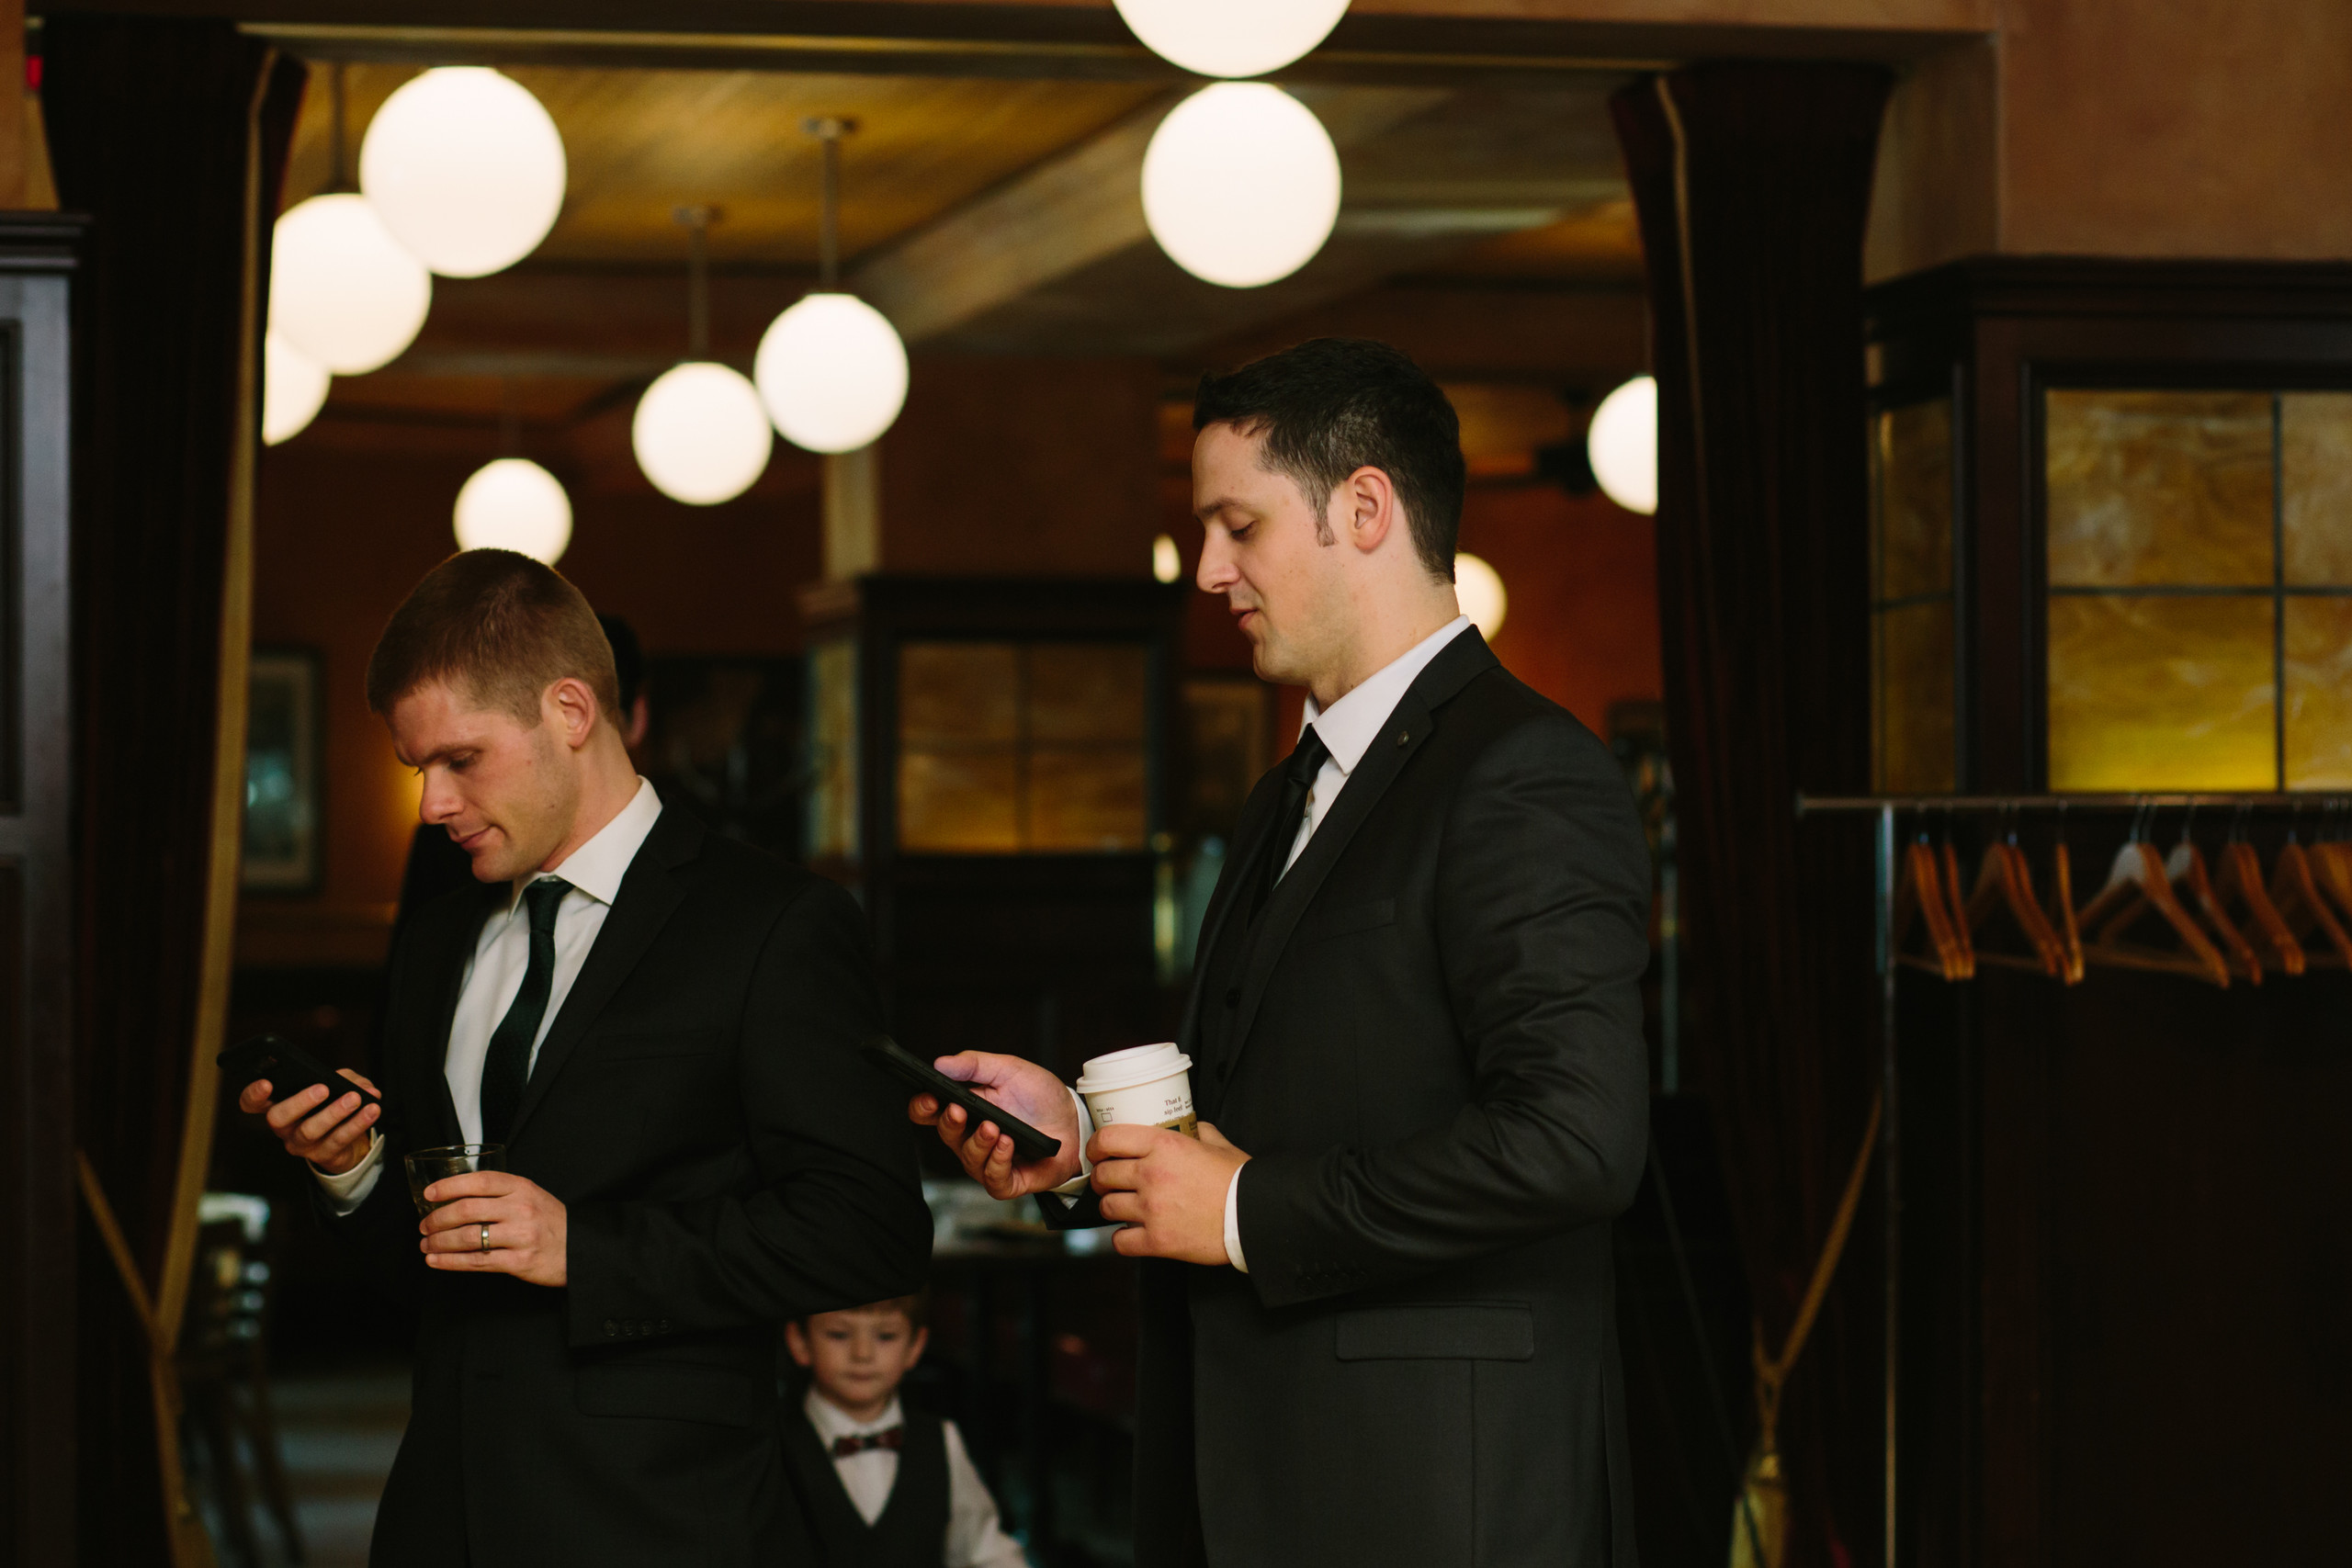 Groom and groomsmen on their phones waiting for wedding ceremony to start at the Metropolitain Brasserie.